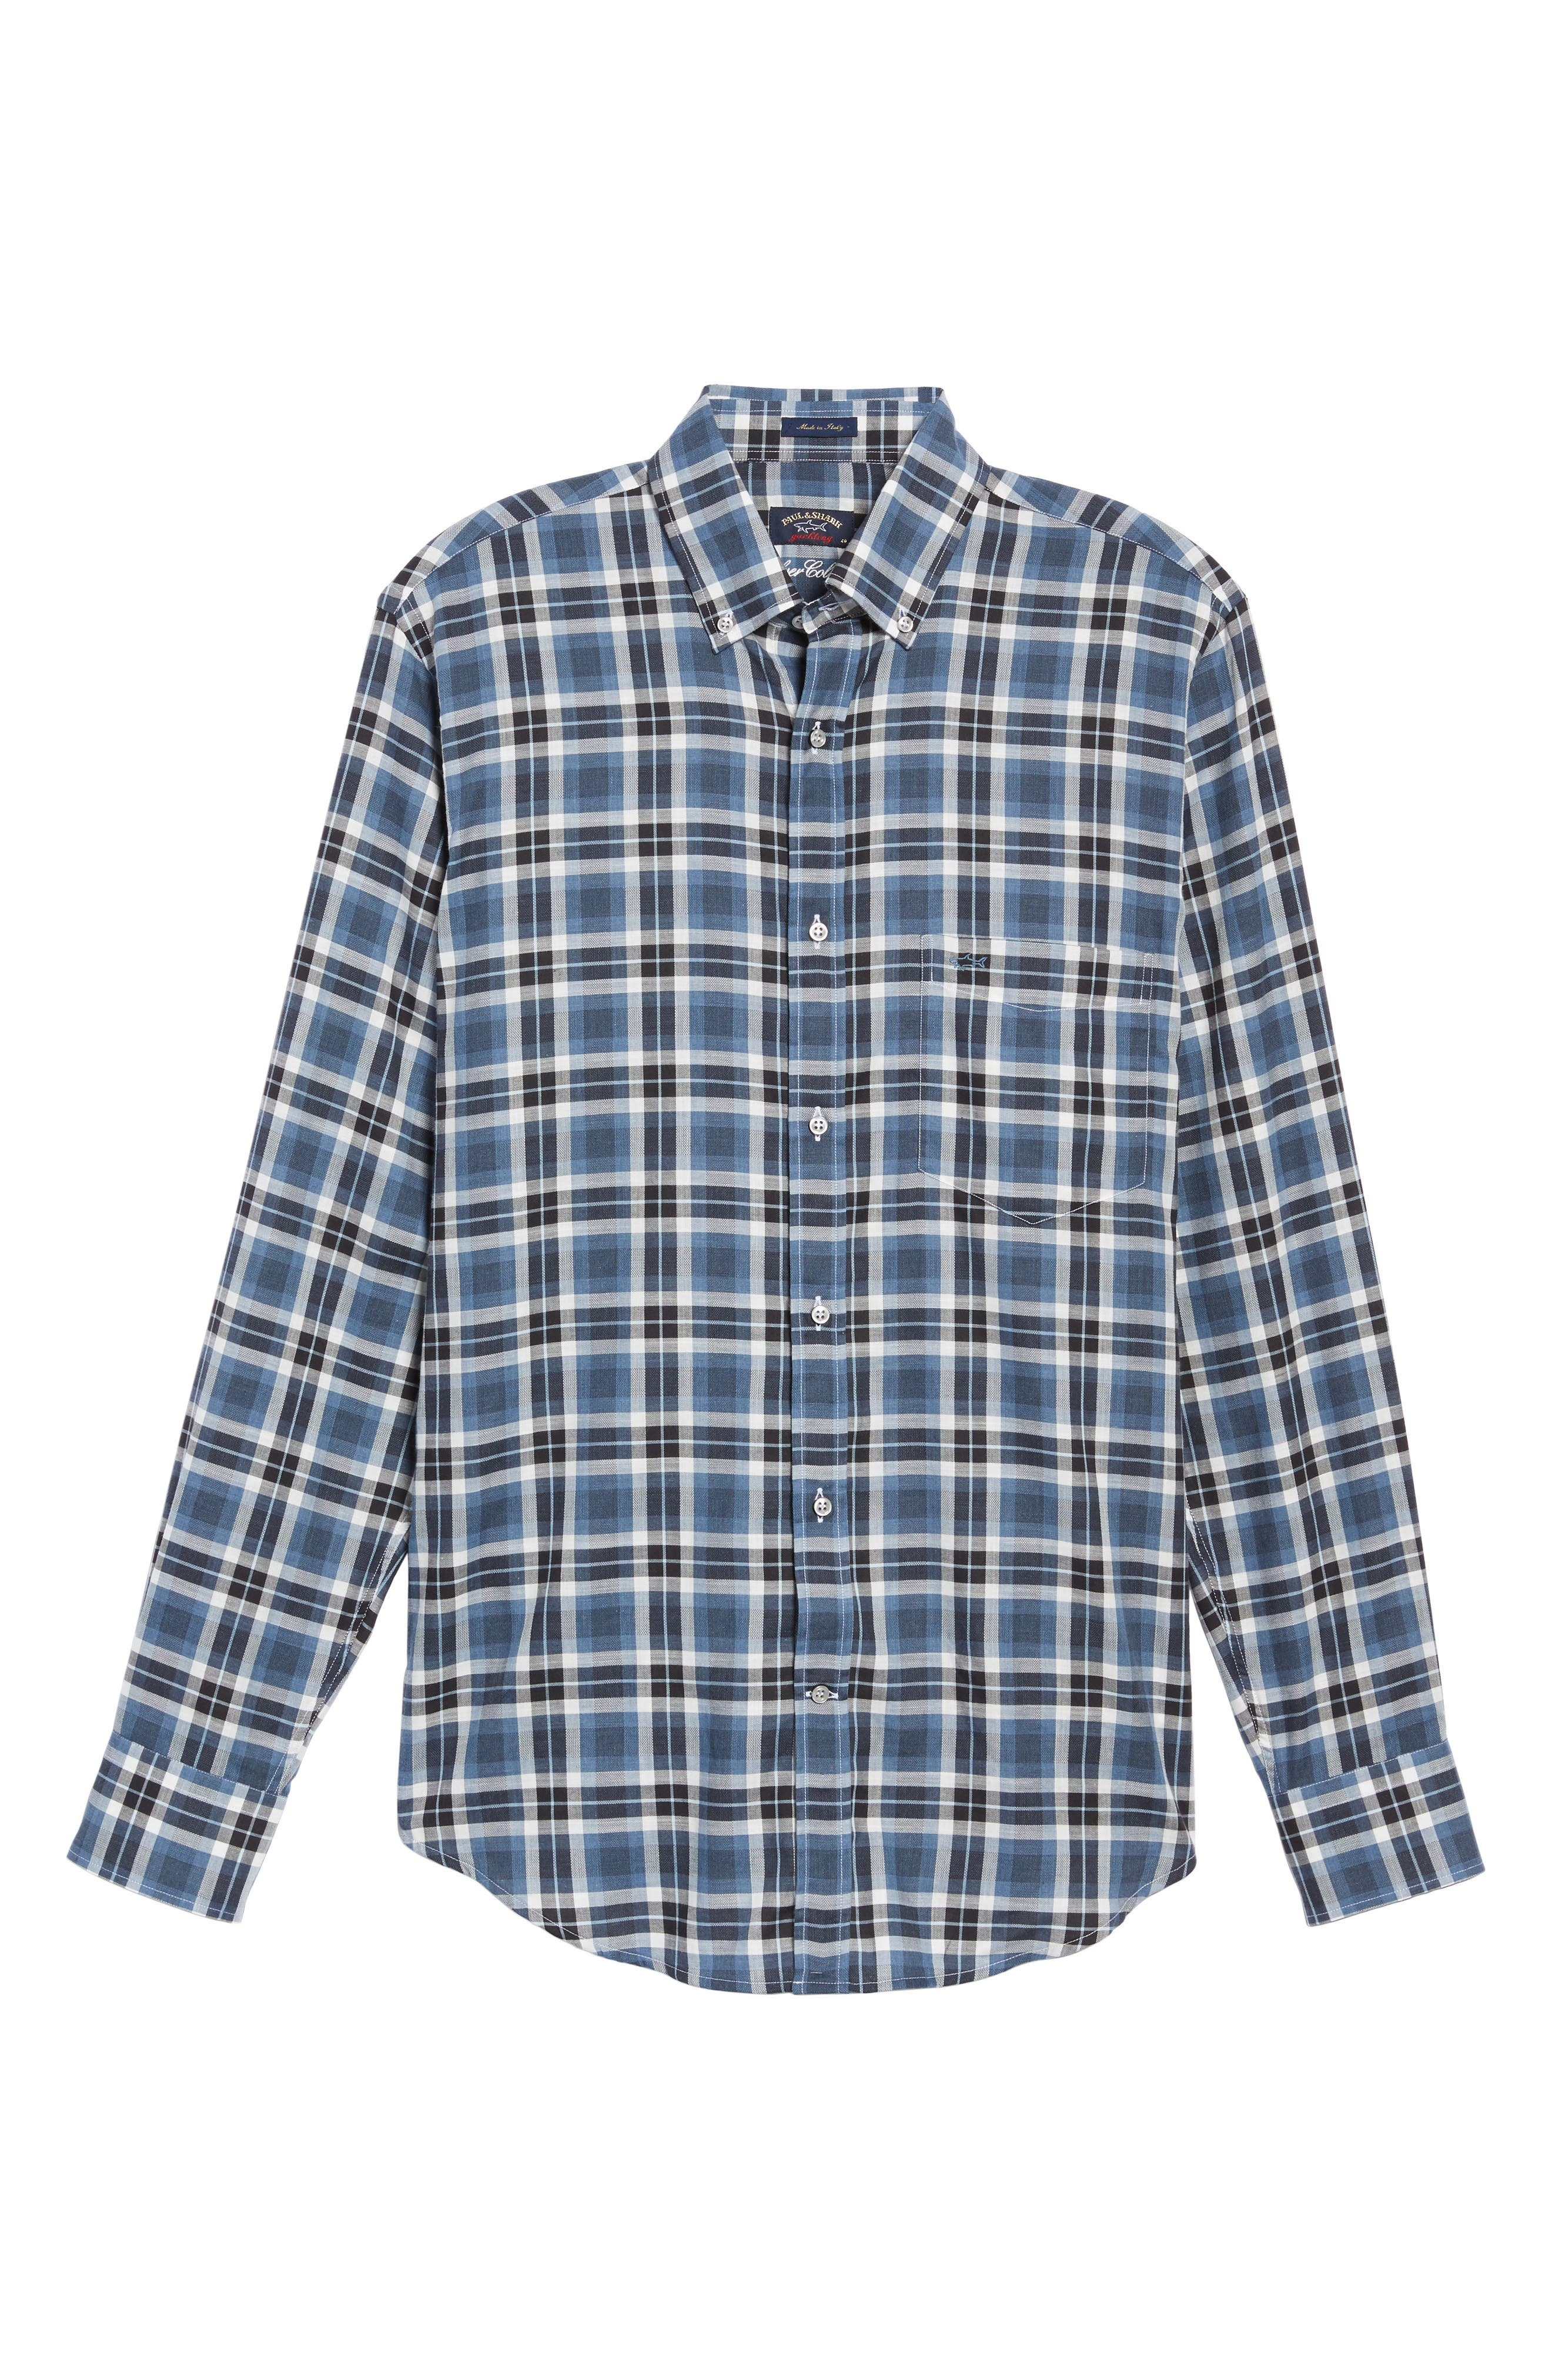 Paul&Shark Silver Collection Plaid Sport Shirt,                             Alternate thumbnail 6, color,                             Blue / Grey